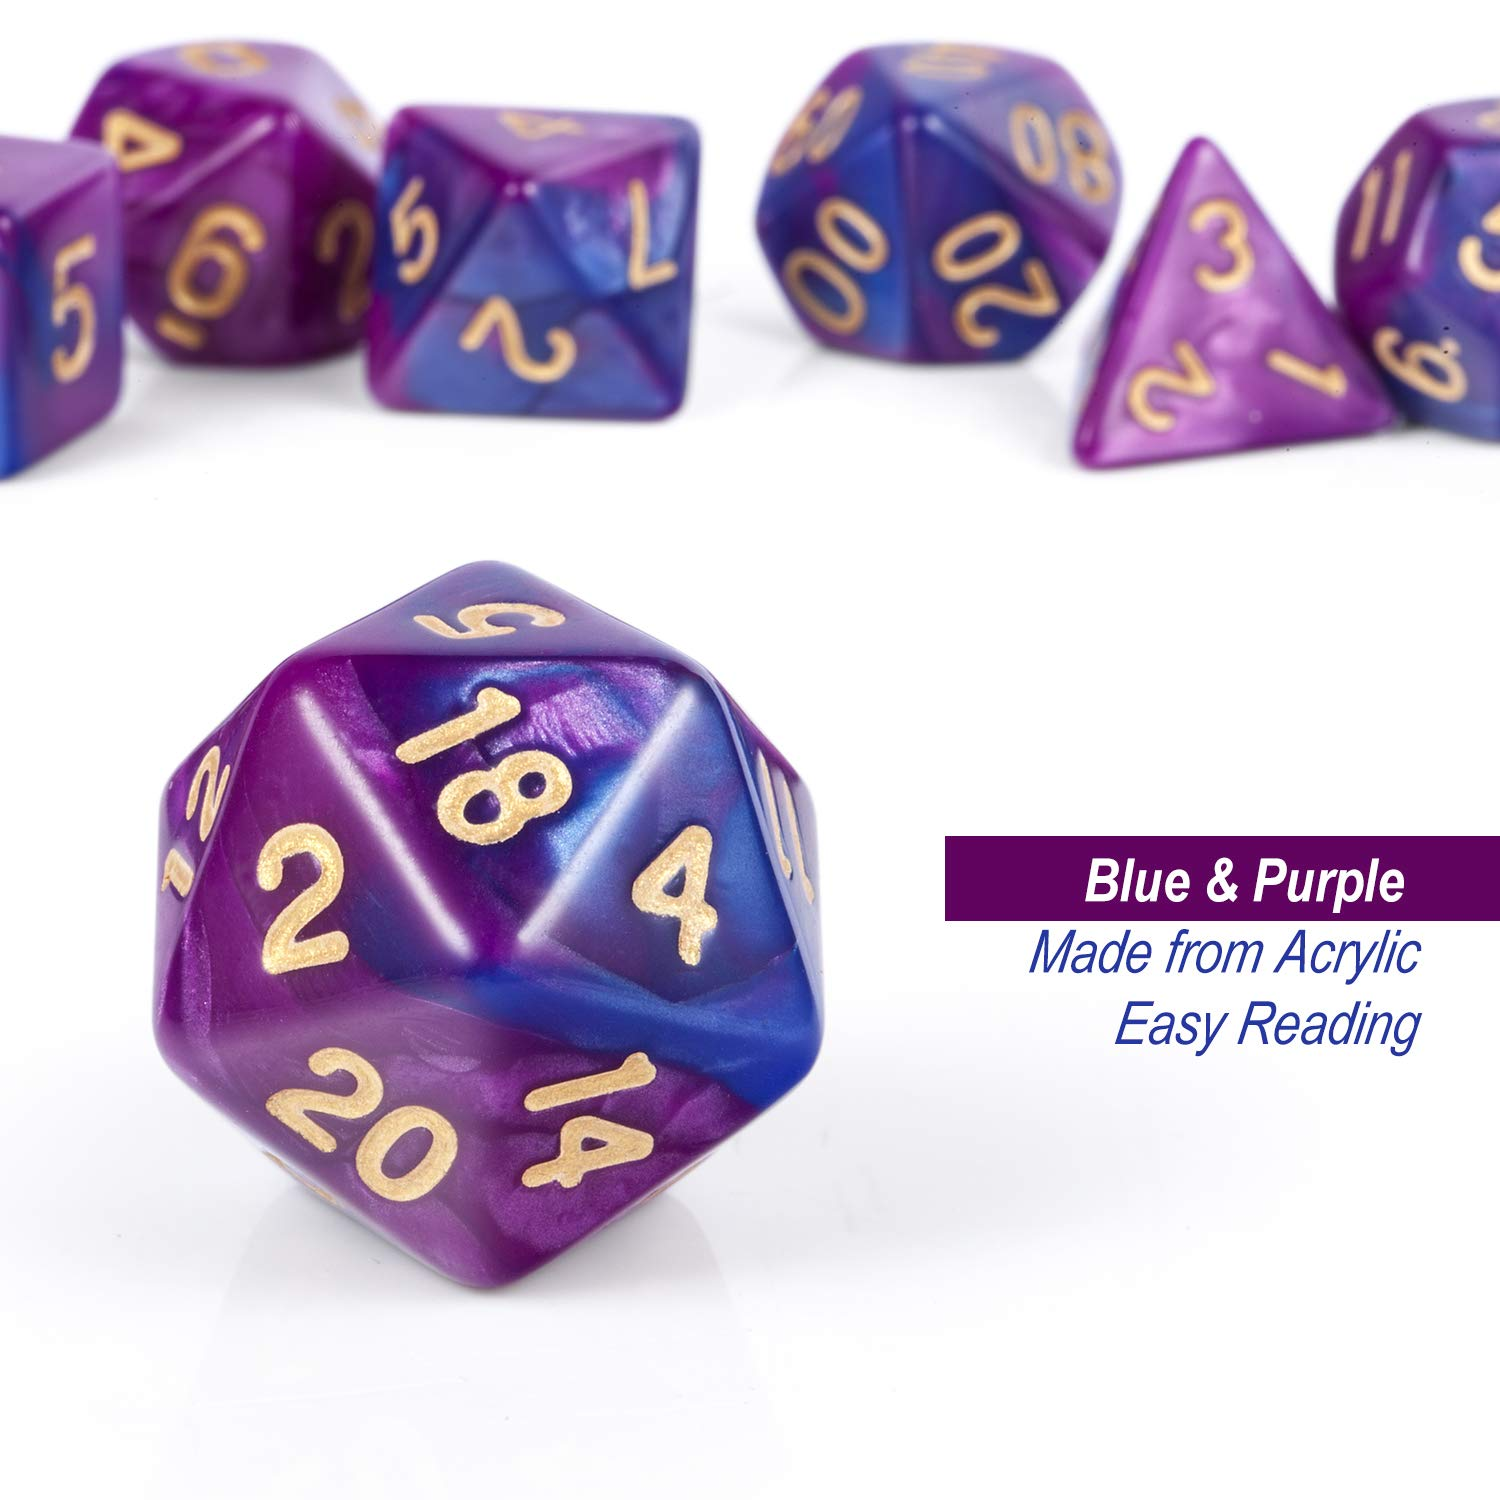 DND Dice Set,Polyhedral Dungeons and Dragons Dice with Free Pounch for Table Games Roll Playing Game Red and Black